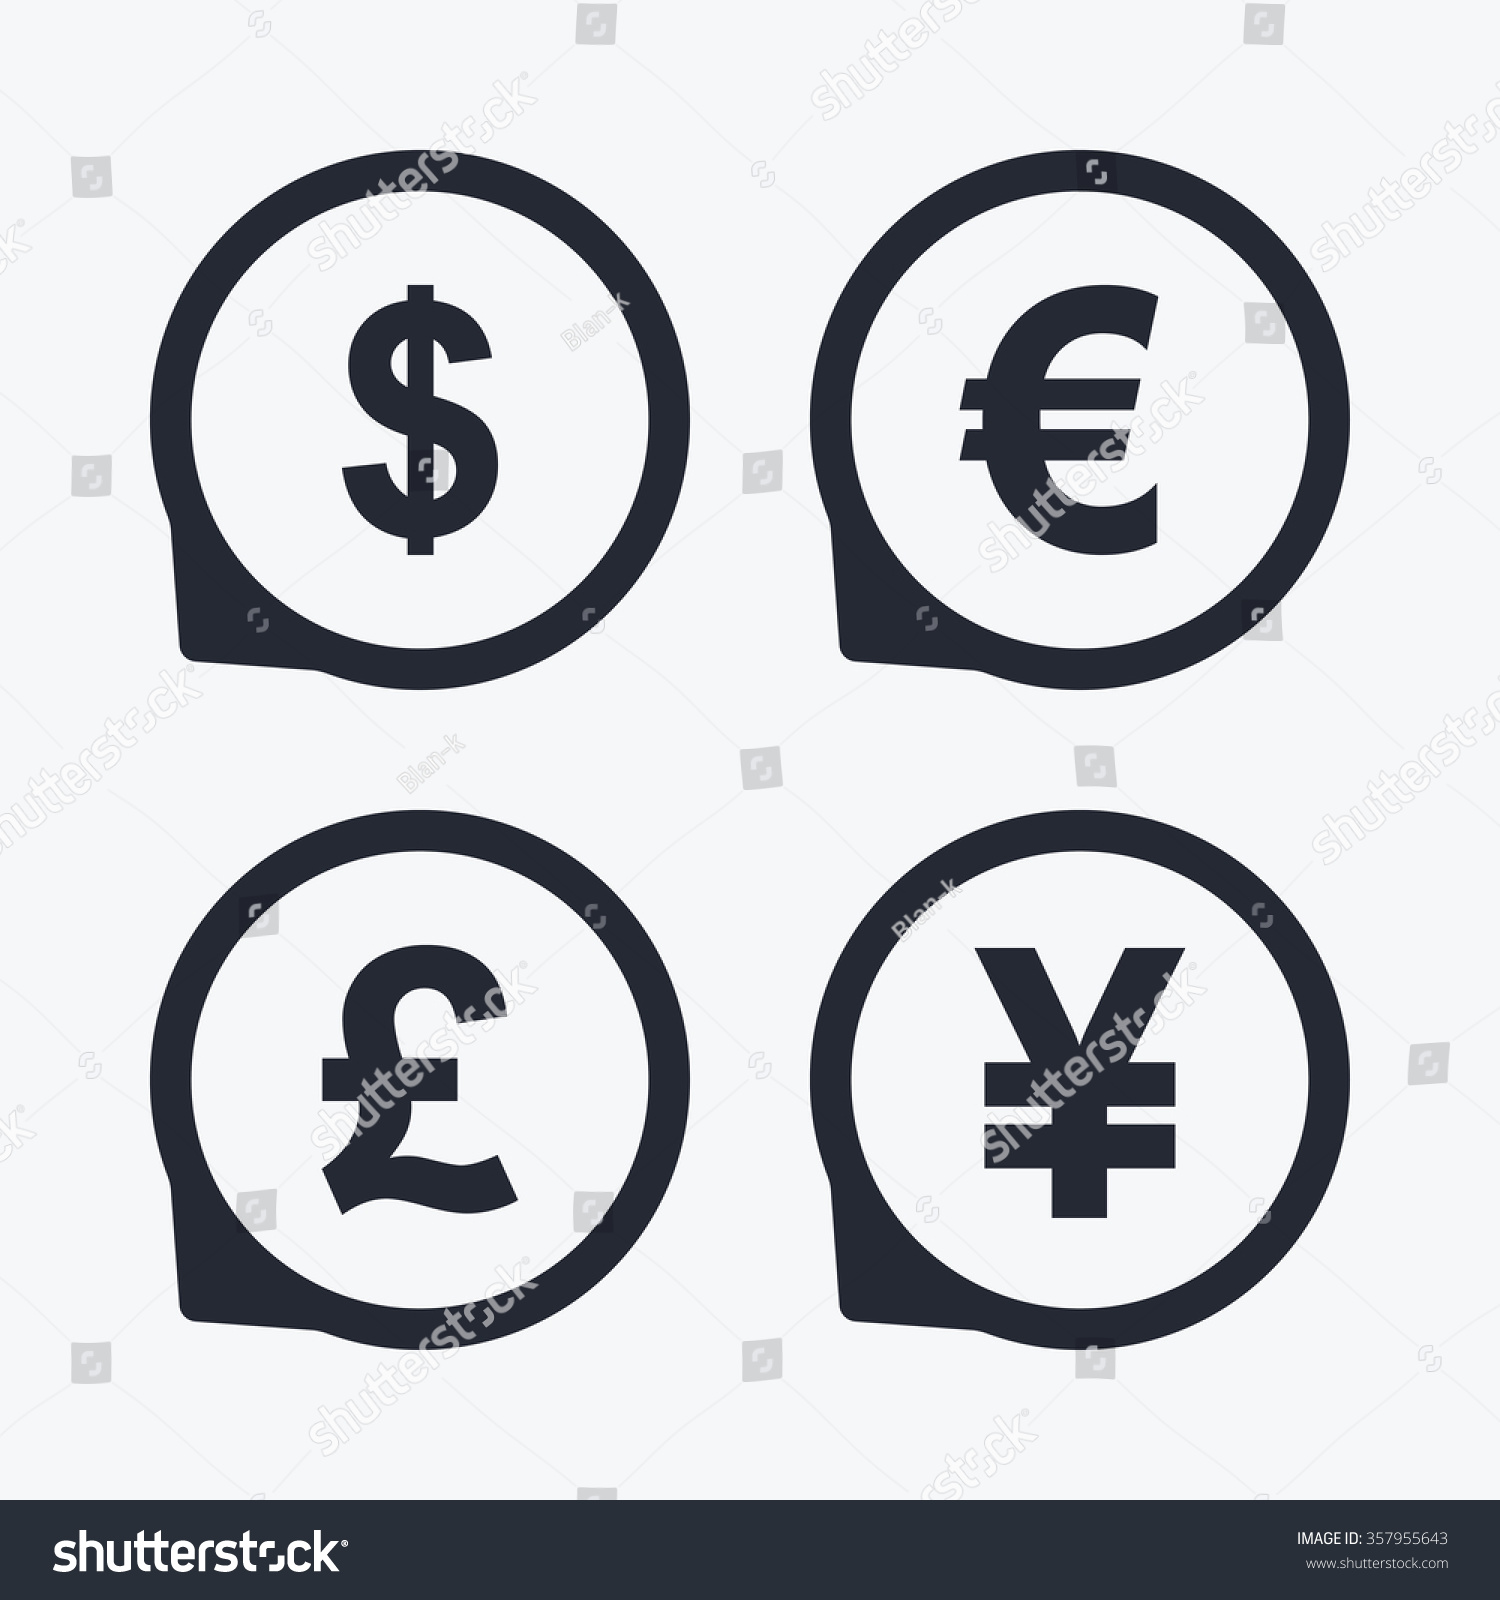 Dollar euro pound yen currency icons stock illustration 357955643 dollar euro pound and yen currency icons usd eur gbp and biocorpaavc Gallery